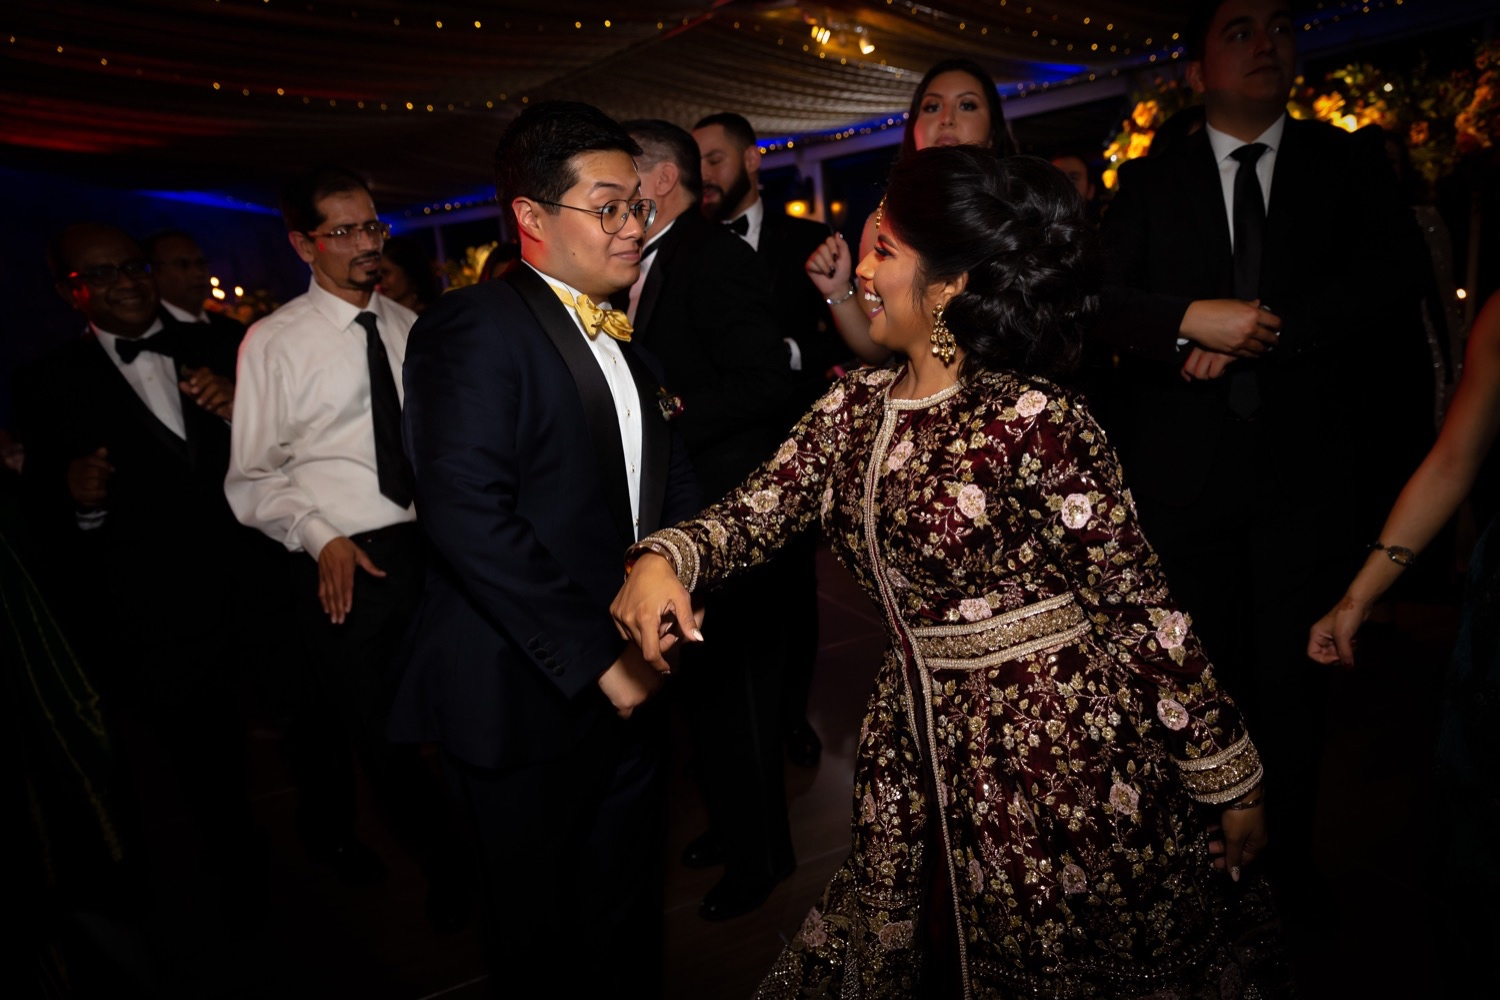 A newly wedded couple dancing during their wedding reception at the Tappan Hill Mansion.